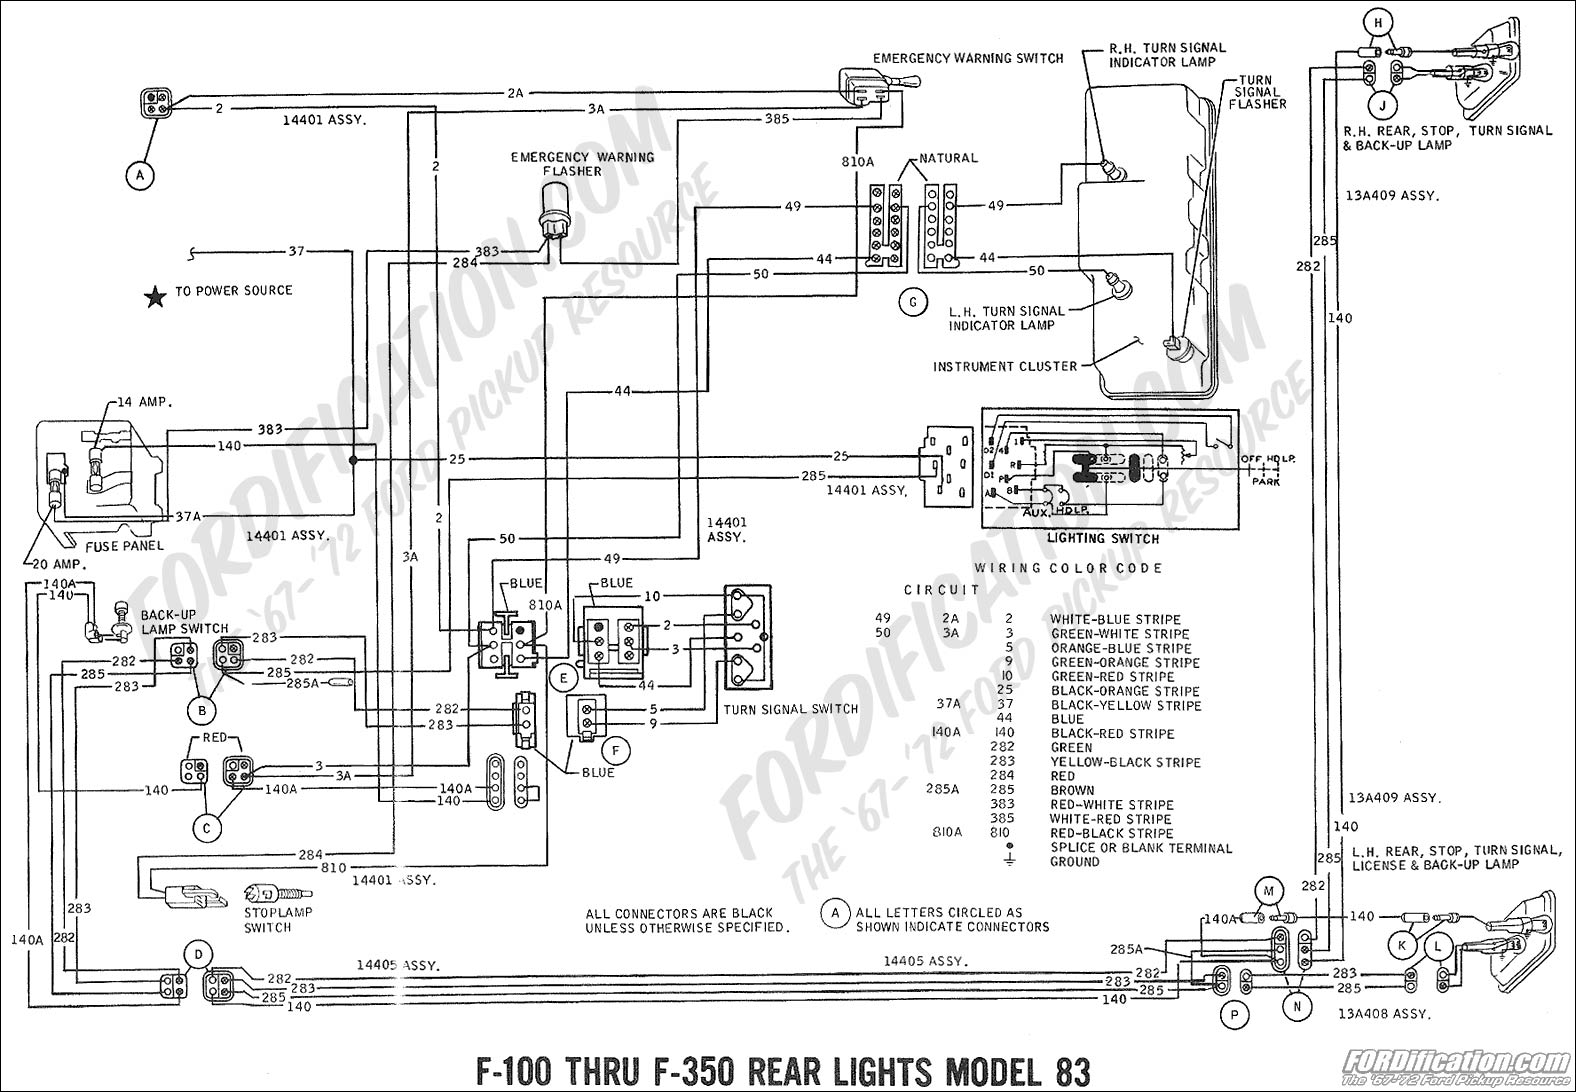 wiring_69rearlights mdl83 2 1977 ford f100 alternator wiring diagram wiring diagram and 1970 Ford F-250 Wiring Diagram at soozxer.org